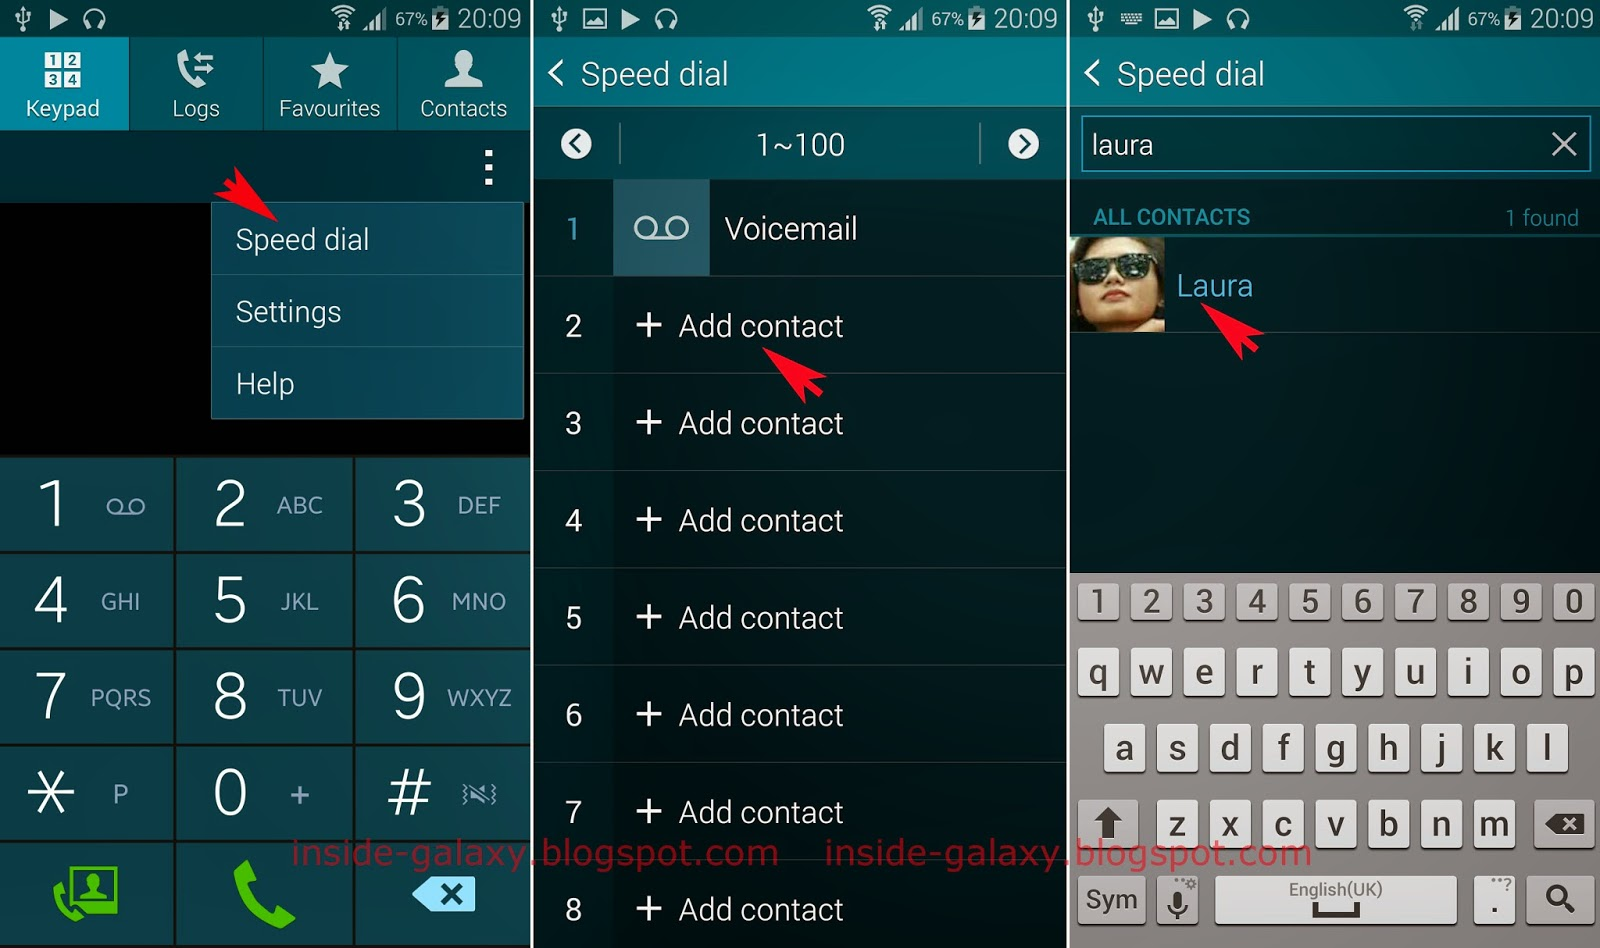 Samsung Galaxy S5: How To Use Speed Dial Feature In Android 442 Kitkat